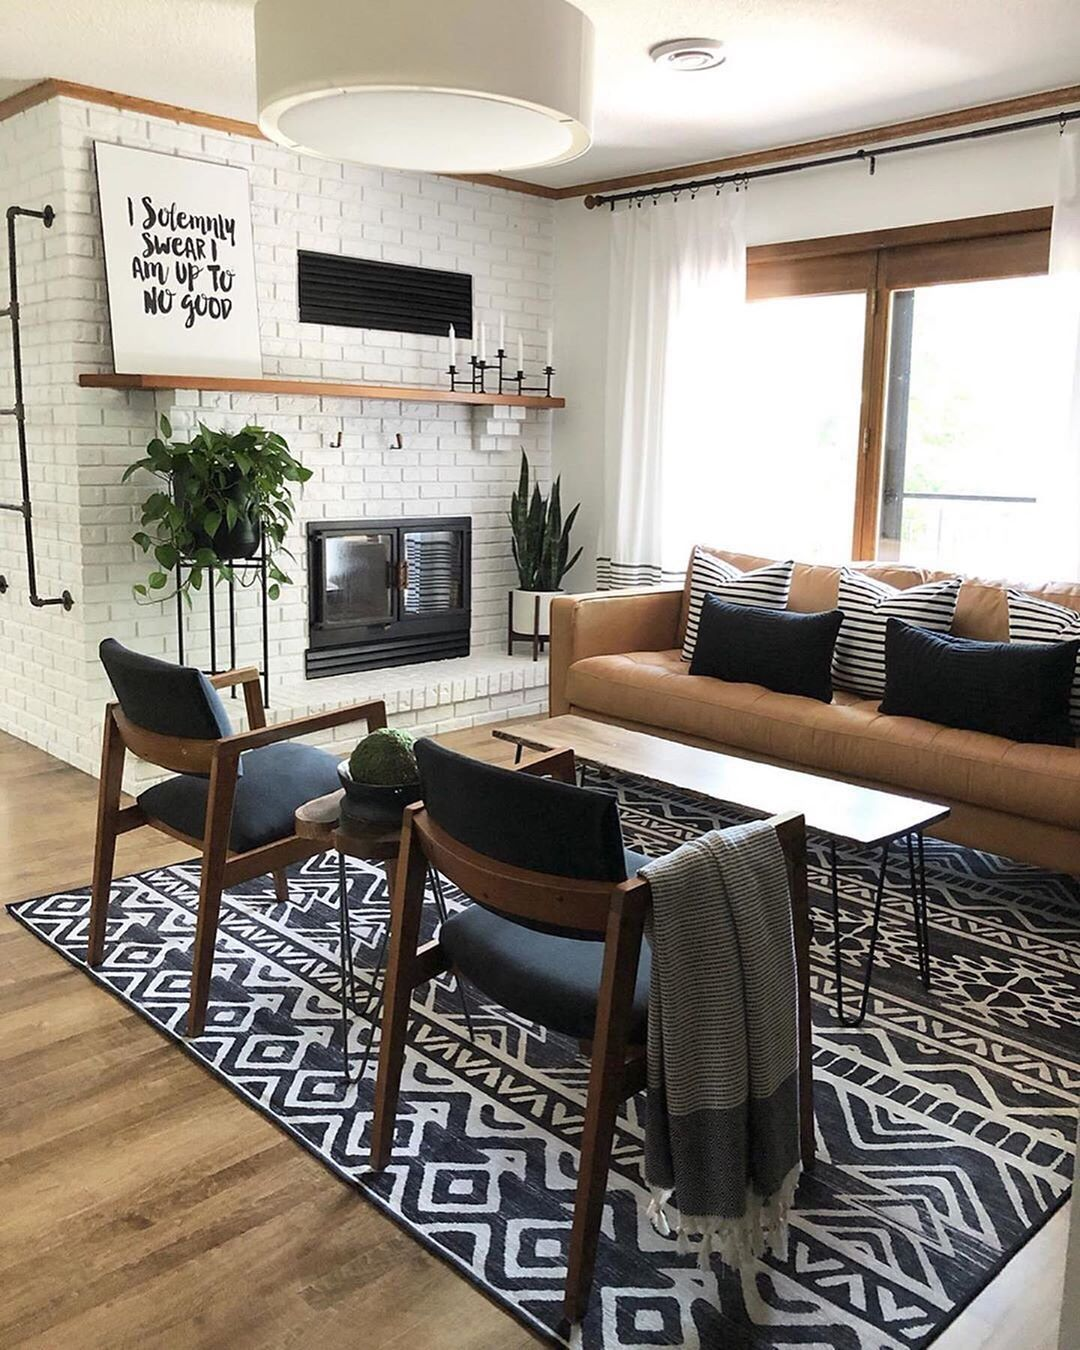 Ruggable On Instagram Before And After Goals By Katechipinski Rug Linear Aztec Black Living Room Without Tv Aztec Home Decor Living Room Inspiration #no #rugs #in #living #room